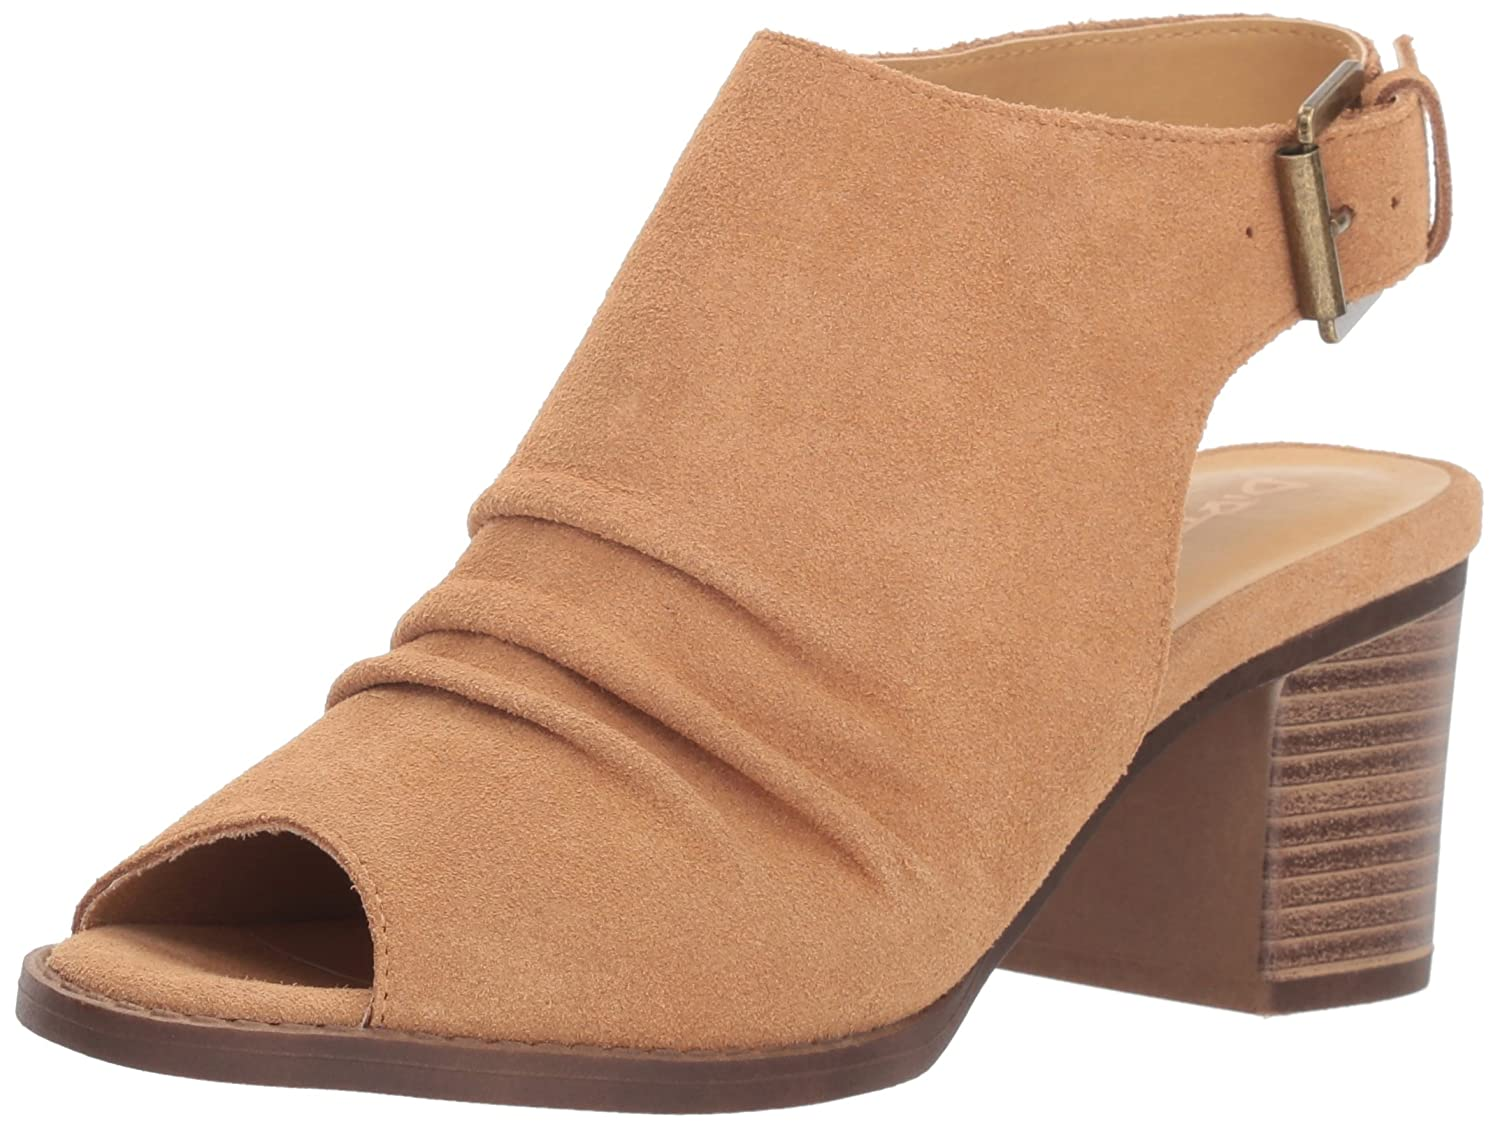 Dirty Laundry Women's Tena Ankle Boot B07BFDYWHN 5.5 M US|Camel Suede